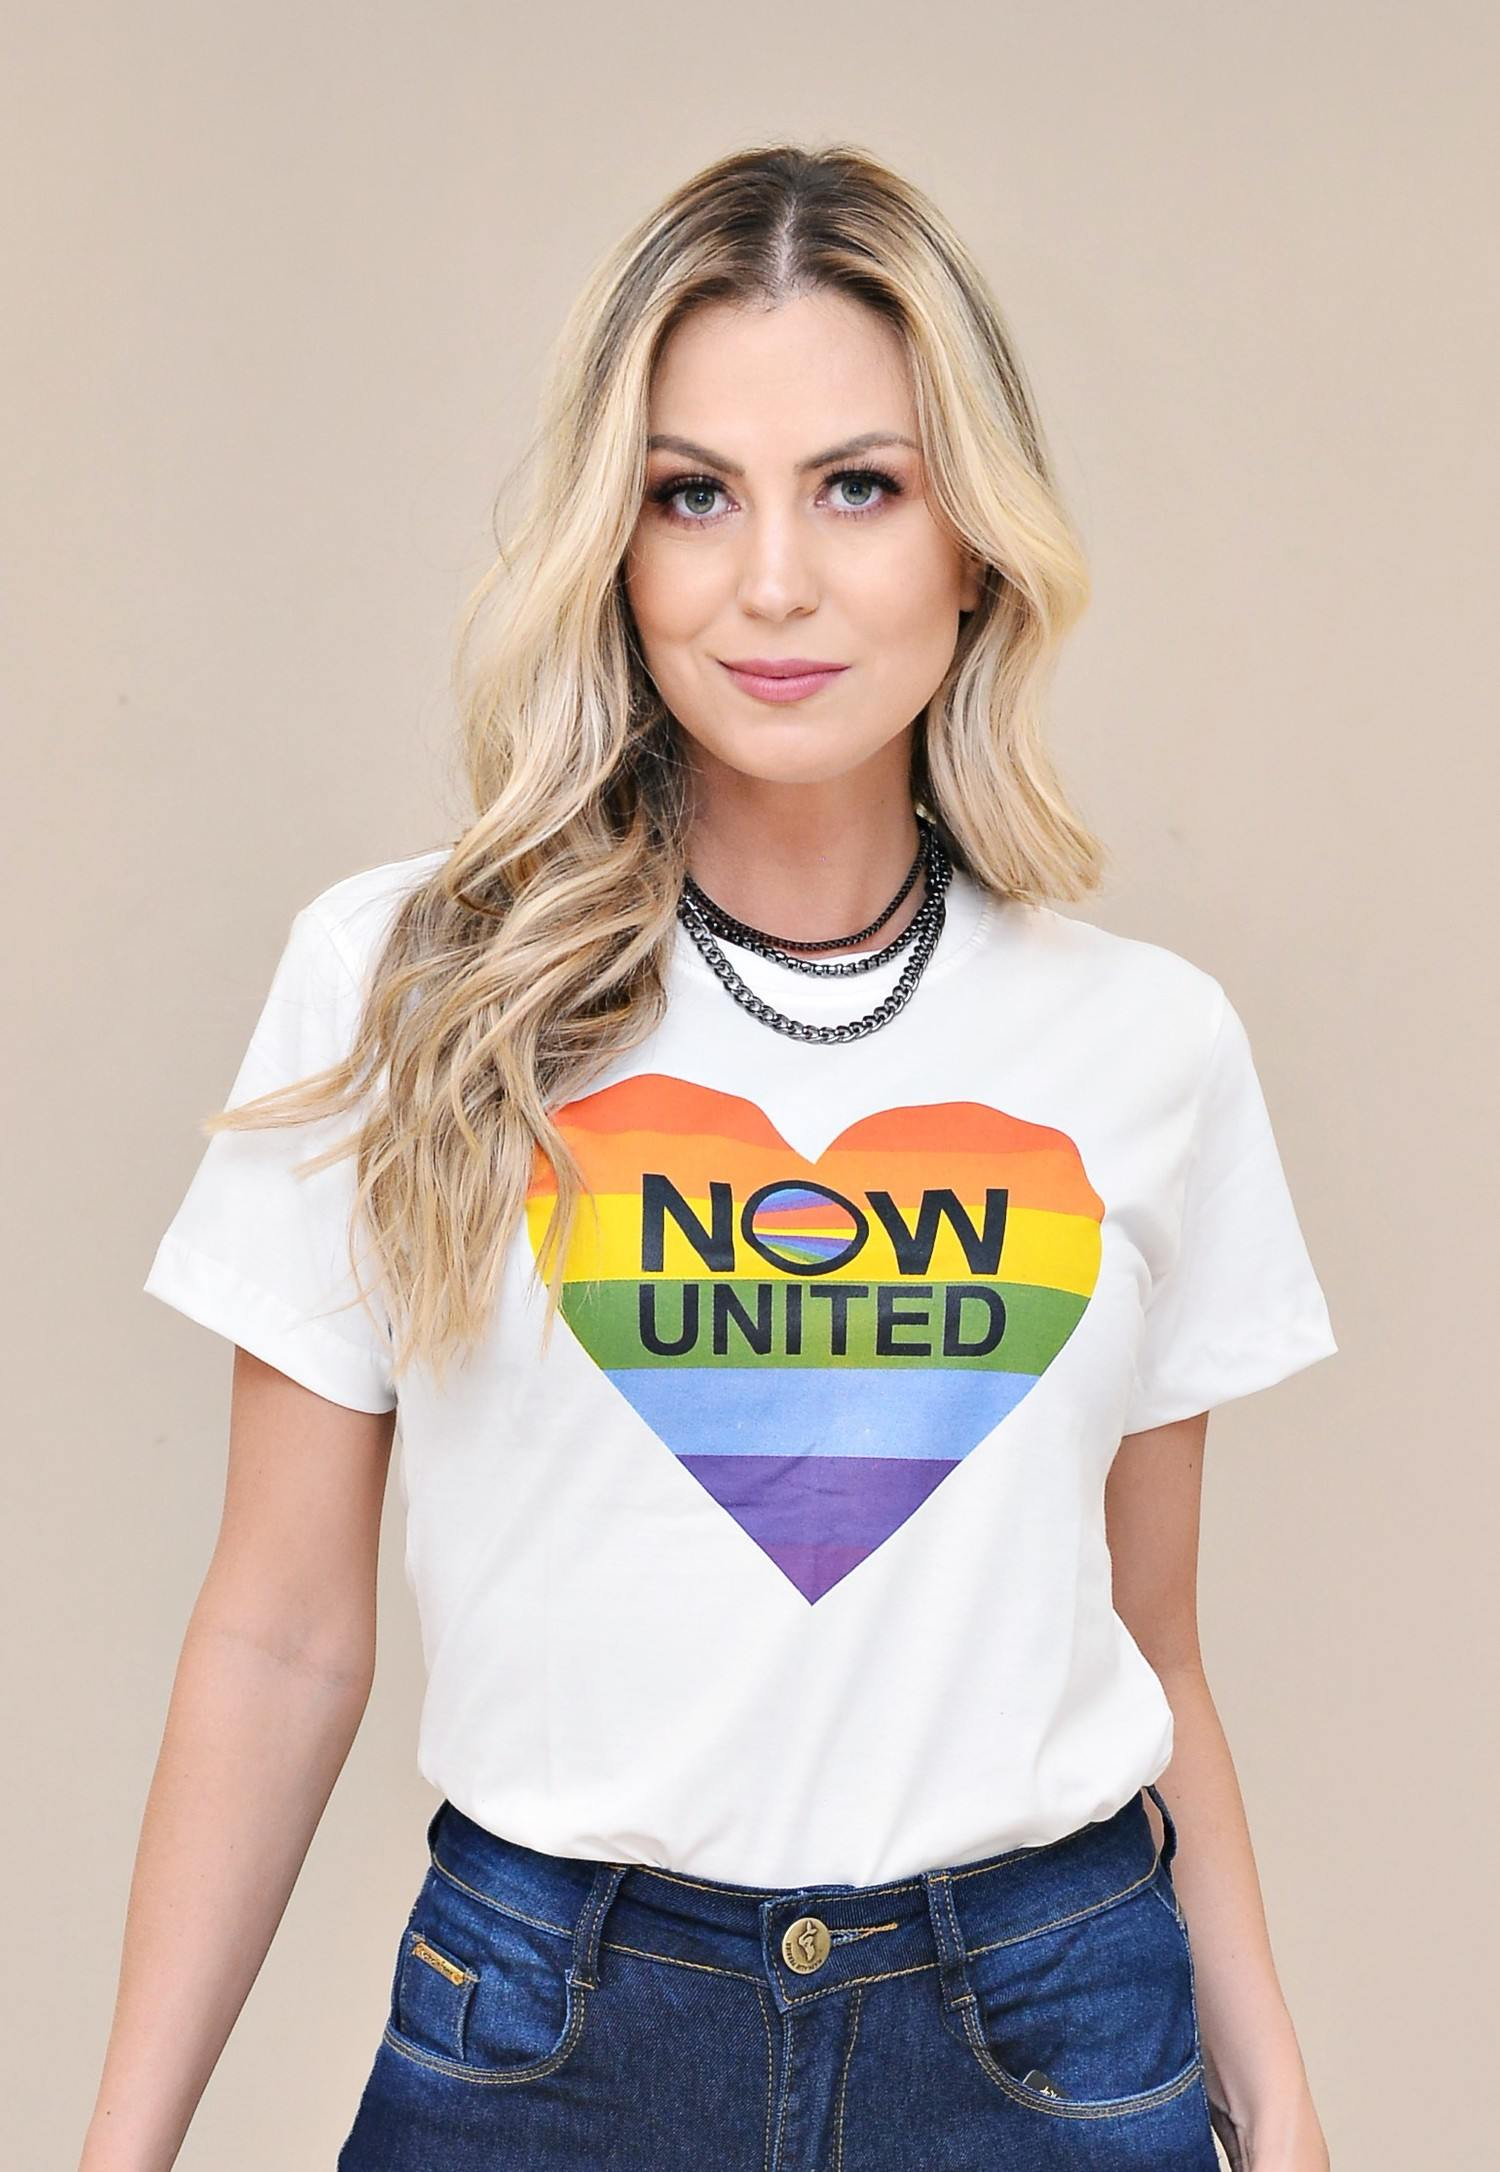 T-SHIRT NOW UNITED - NATHALIE FERRIER